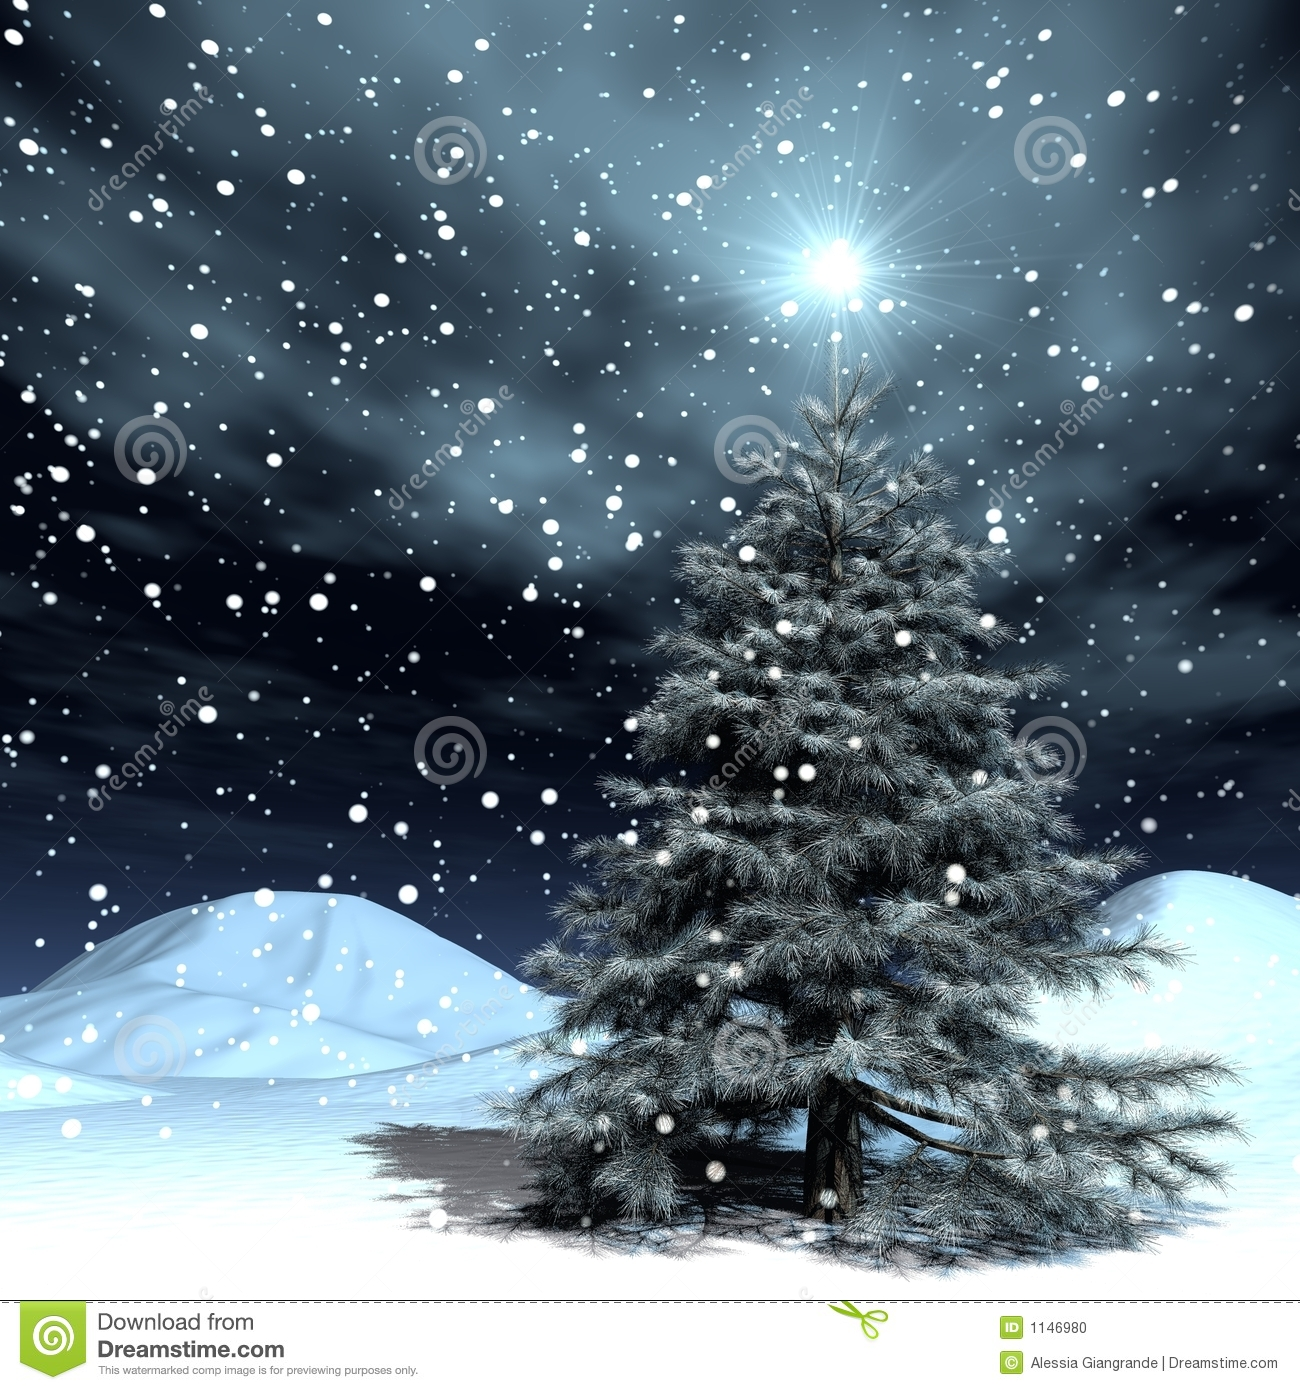 More similar stock images of ` Snowing Christmas `